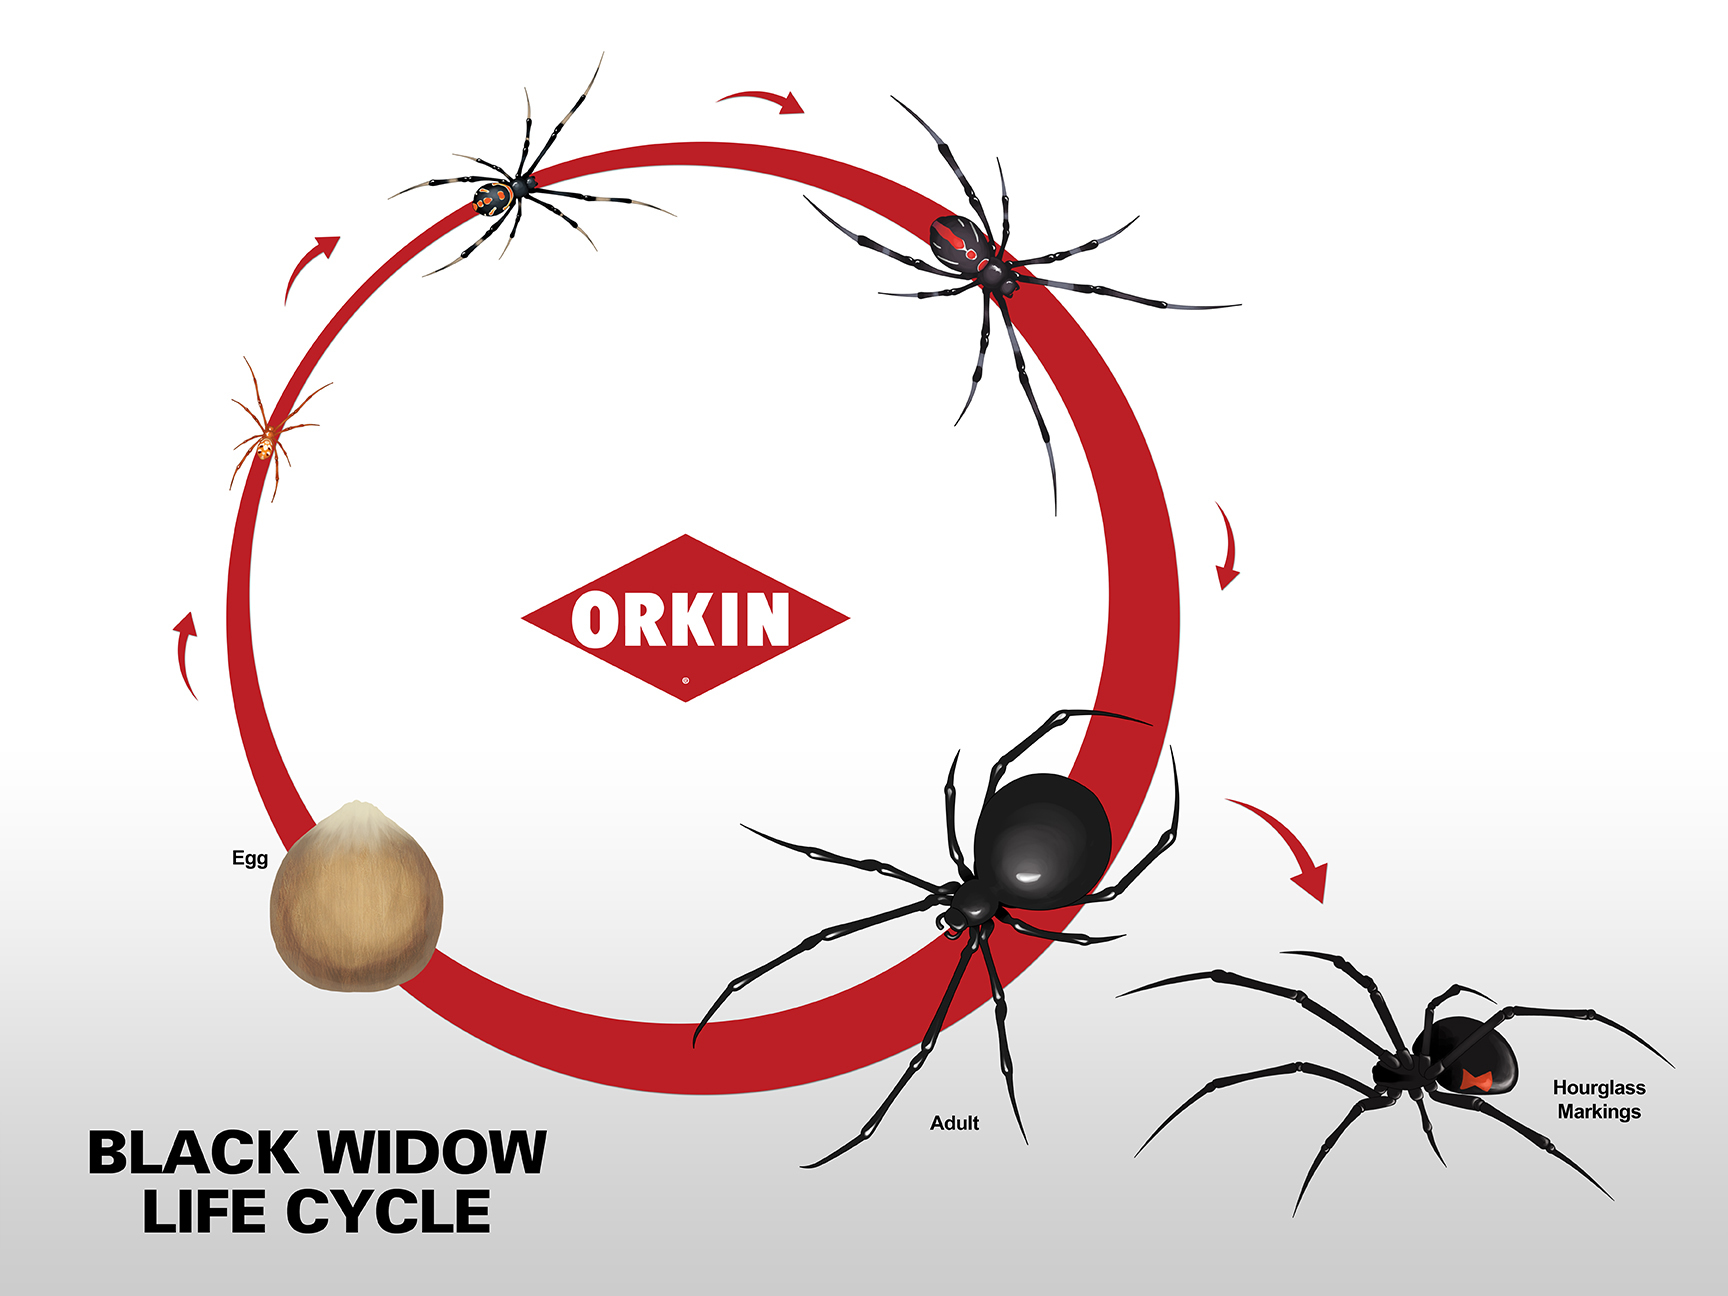 black widow life cycle \u0026 reproduction Spider Egg Diagram how do spiders mate?